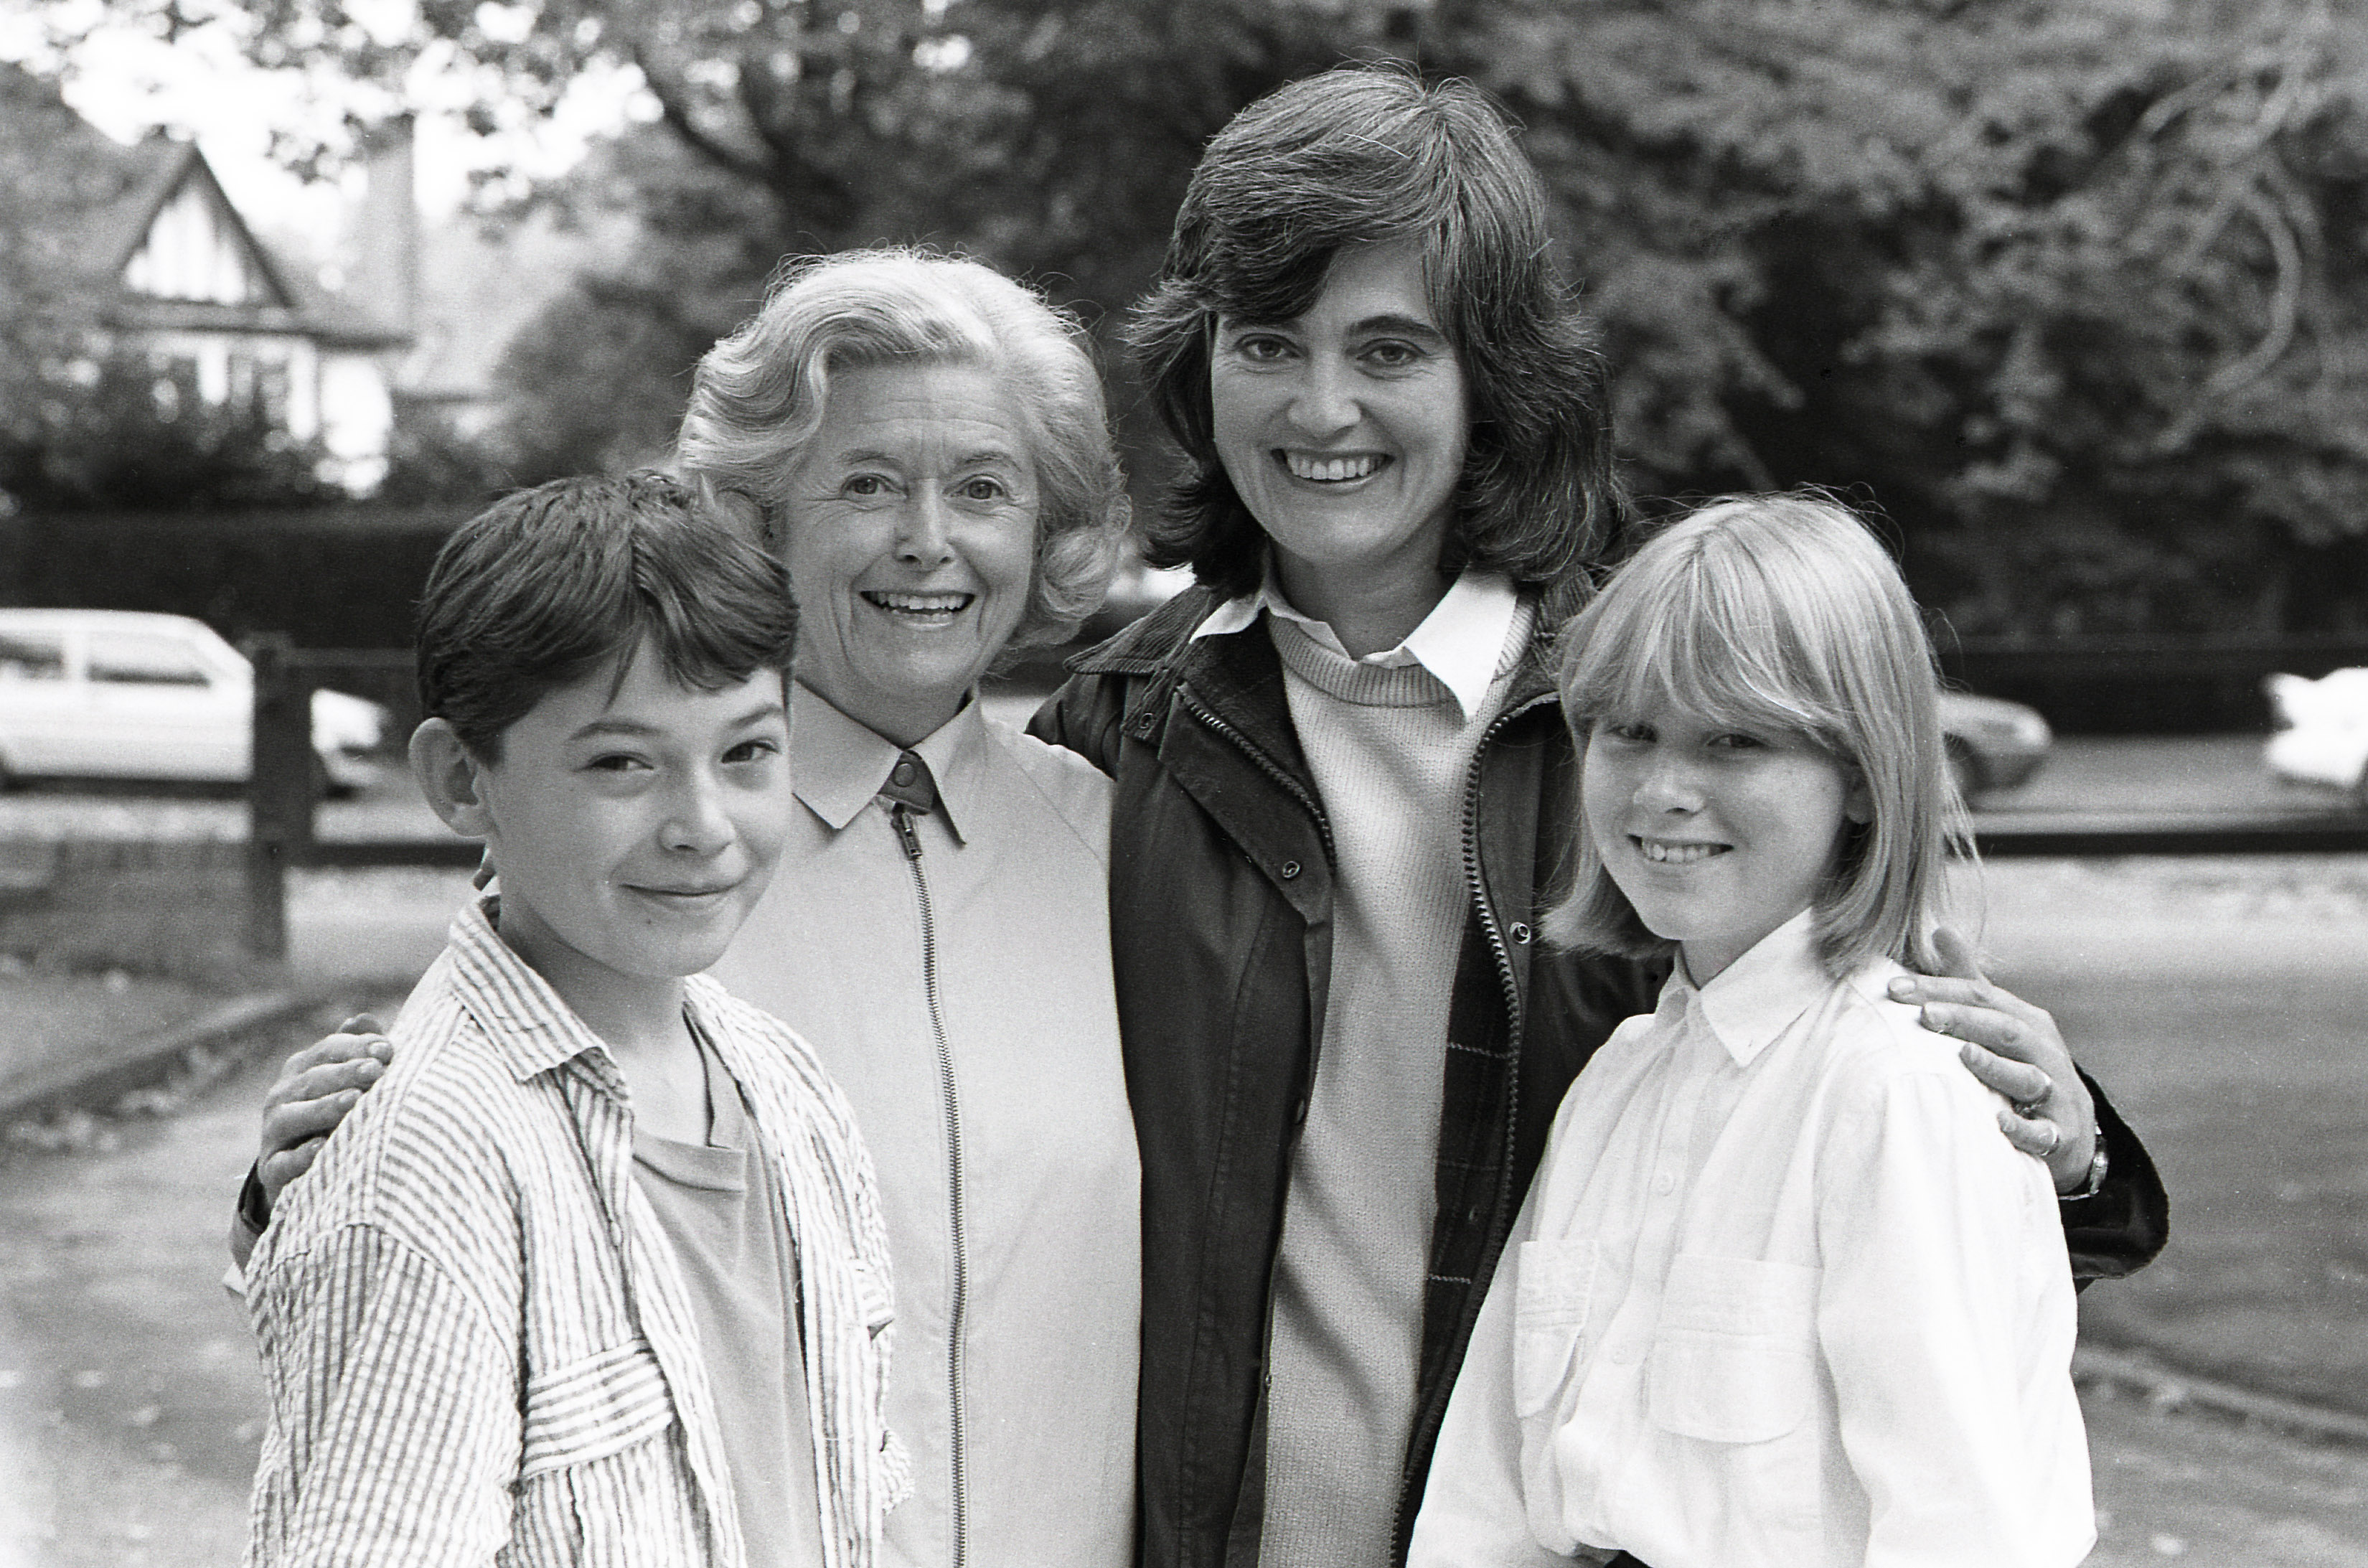 Sam Barriscale as John Archer, June Spencer as Peggy Archer, Patricia Gallimore as Pat Archer and Frances Graham as Helen Archer in 1987